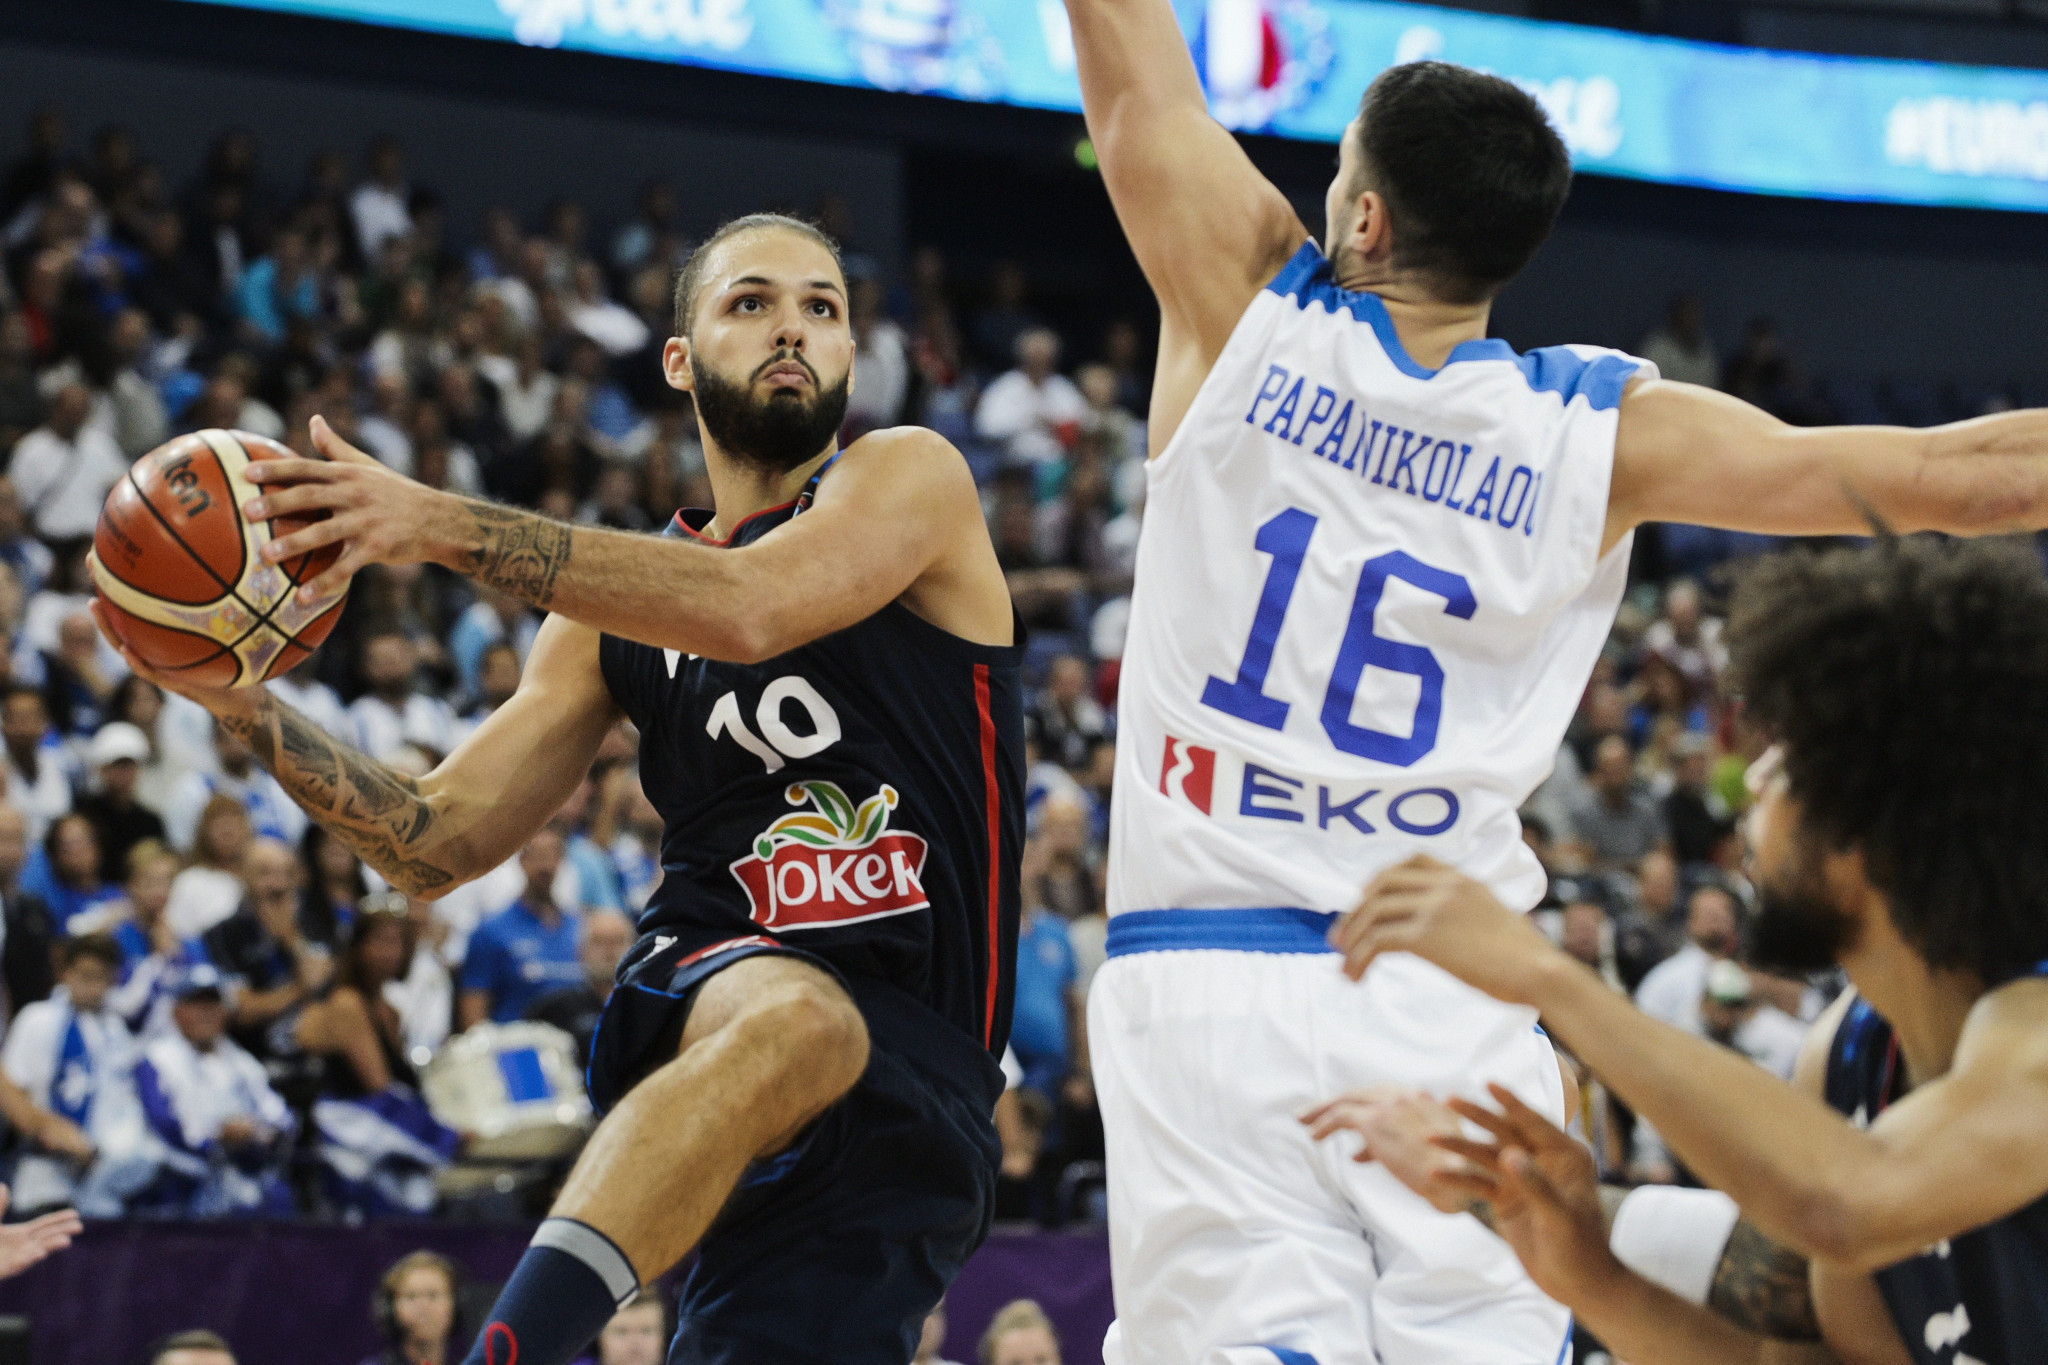 France bounce back from shock defeat at EuroBasket